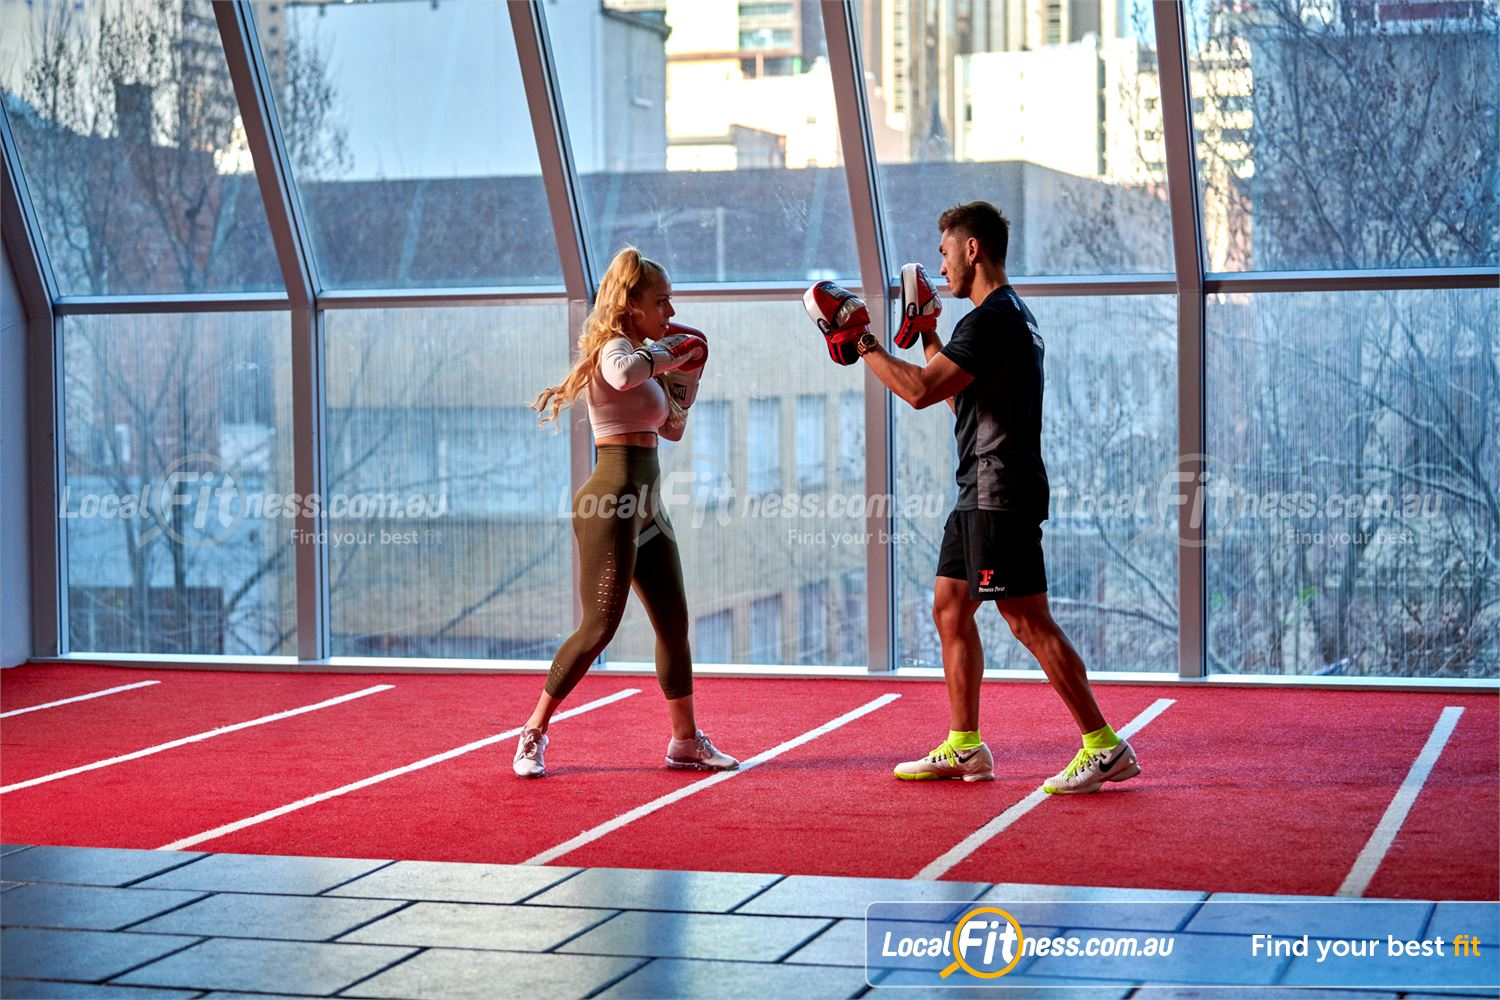 Fitness First QV Platinum Near Southbank Stunning views of the Melbourne city streets from our QV Melbourne gym.